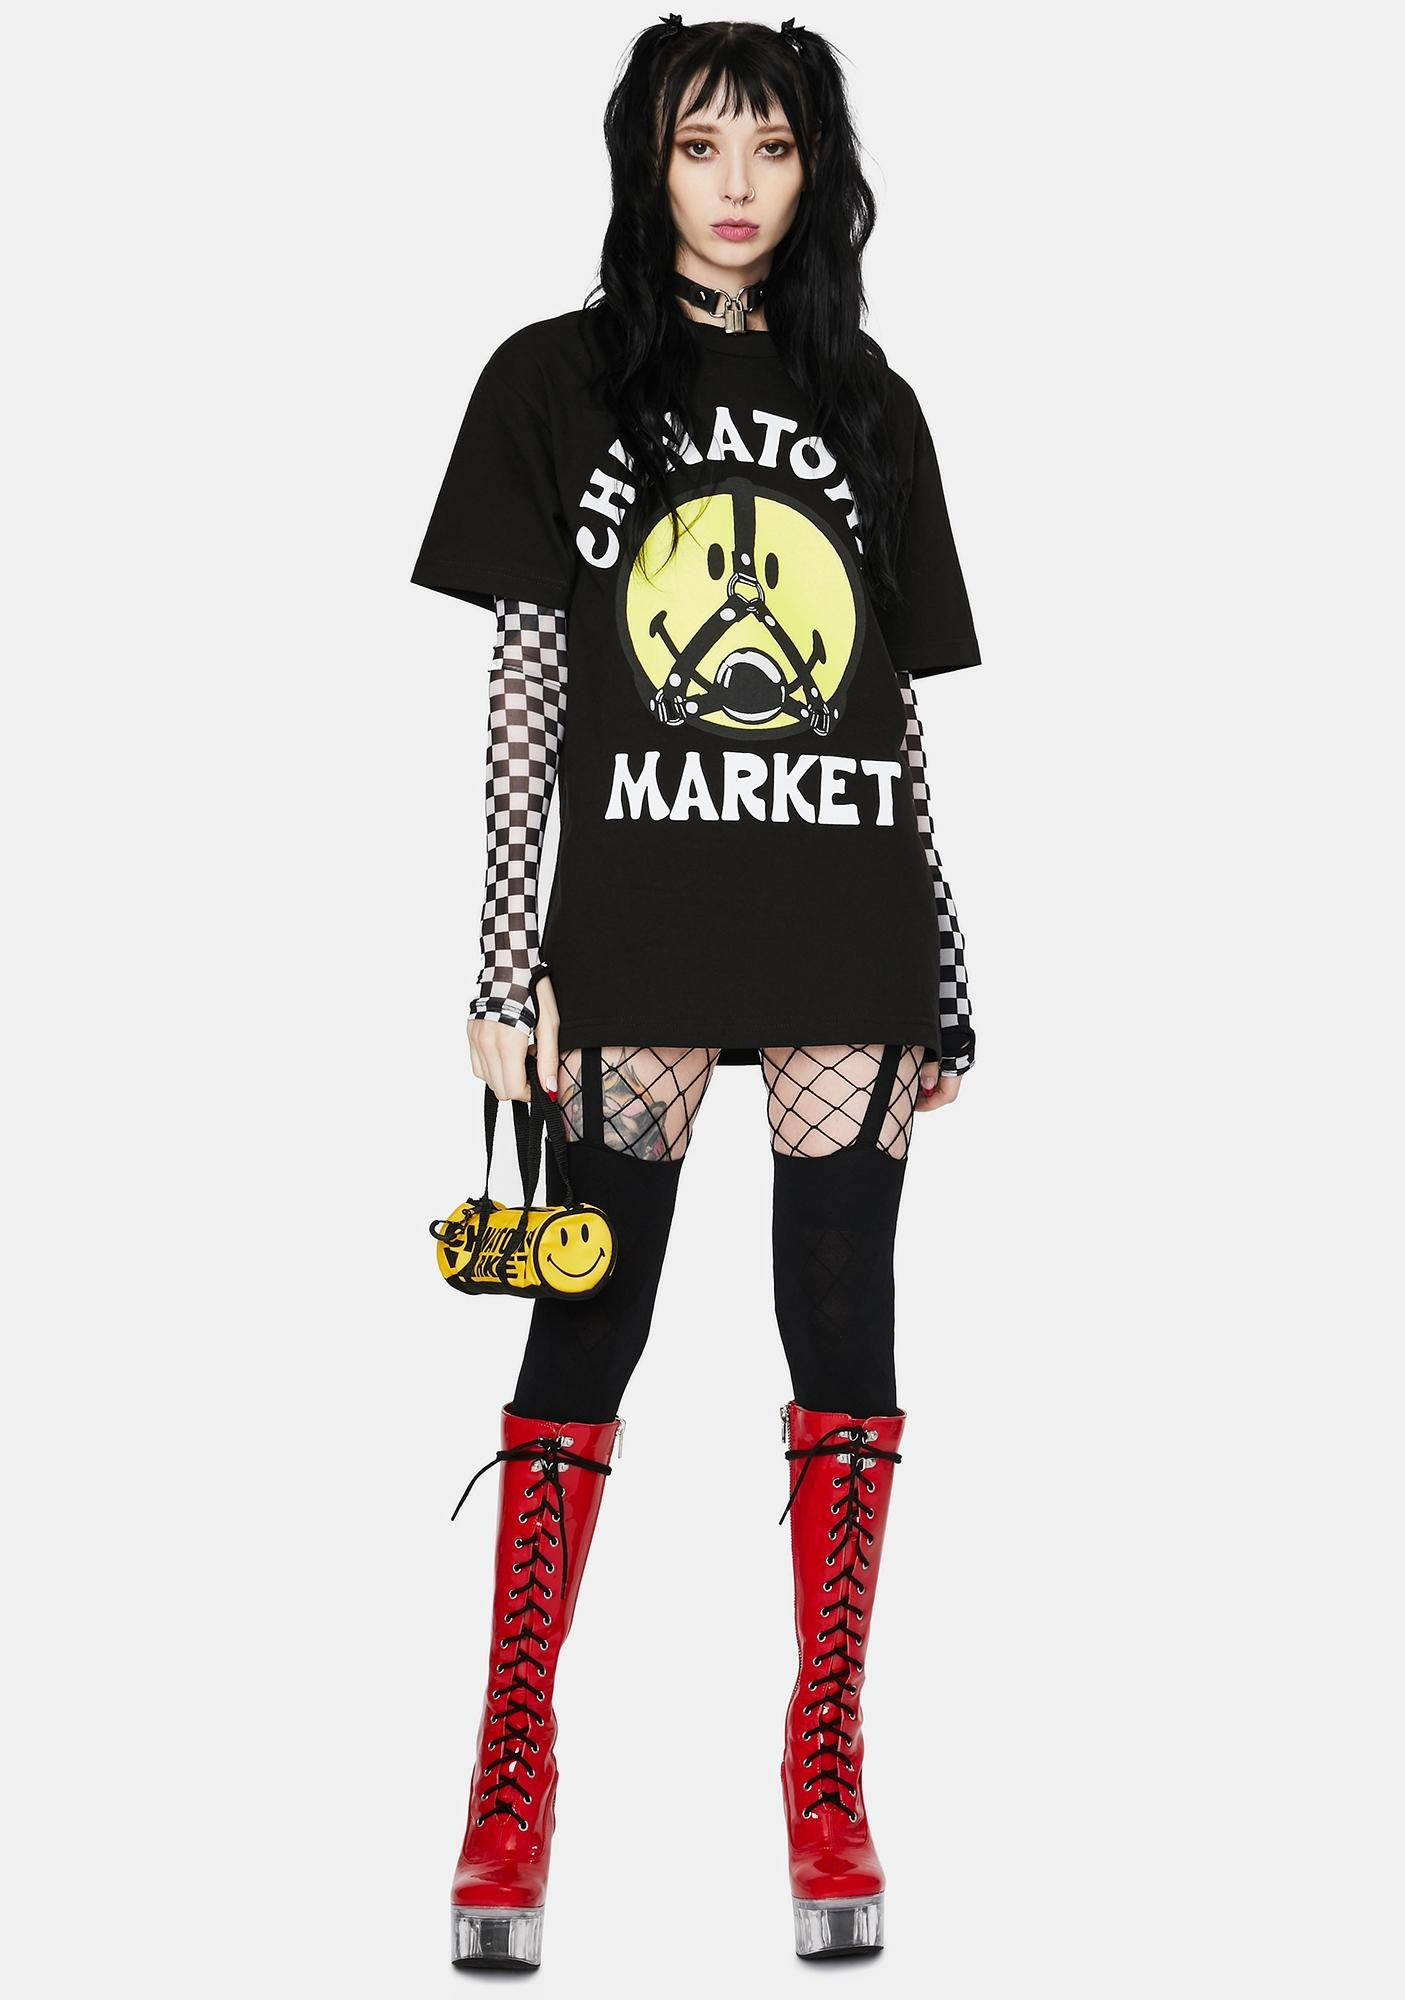 CHINATOWN MARKET Smiley Ball Gag Graphic Tee